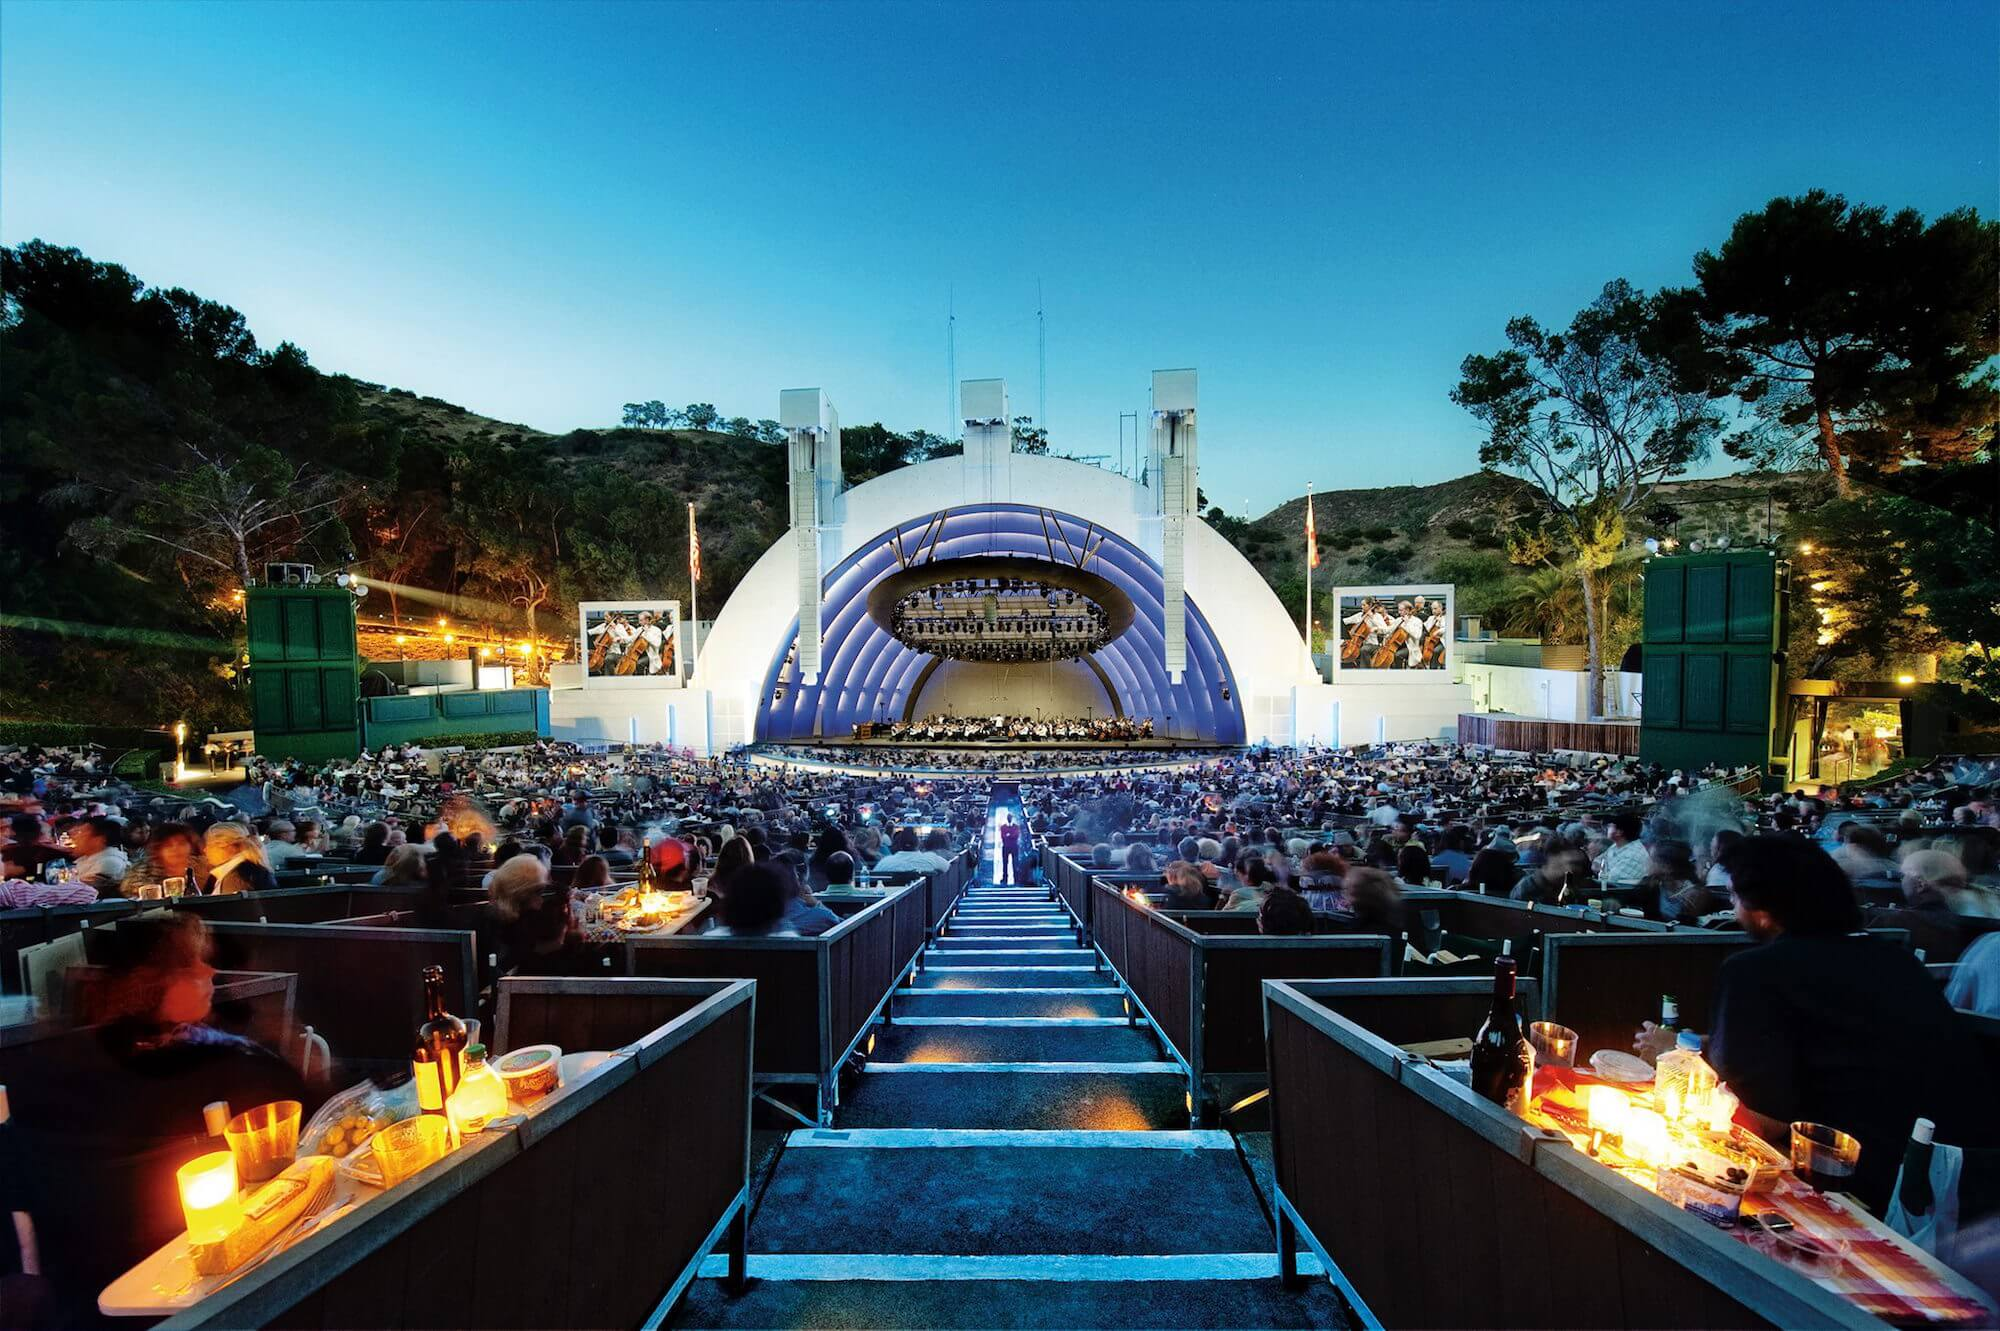 Hollywood Bowl concerts discount tickets